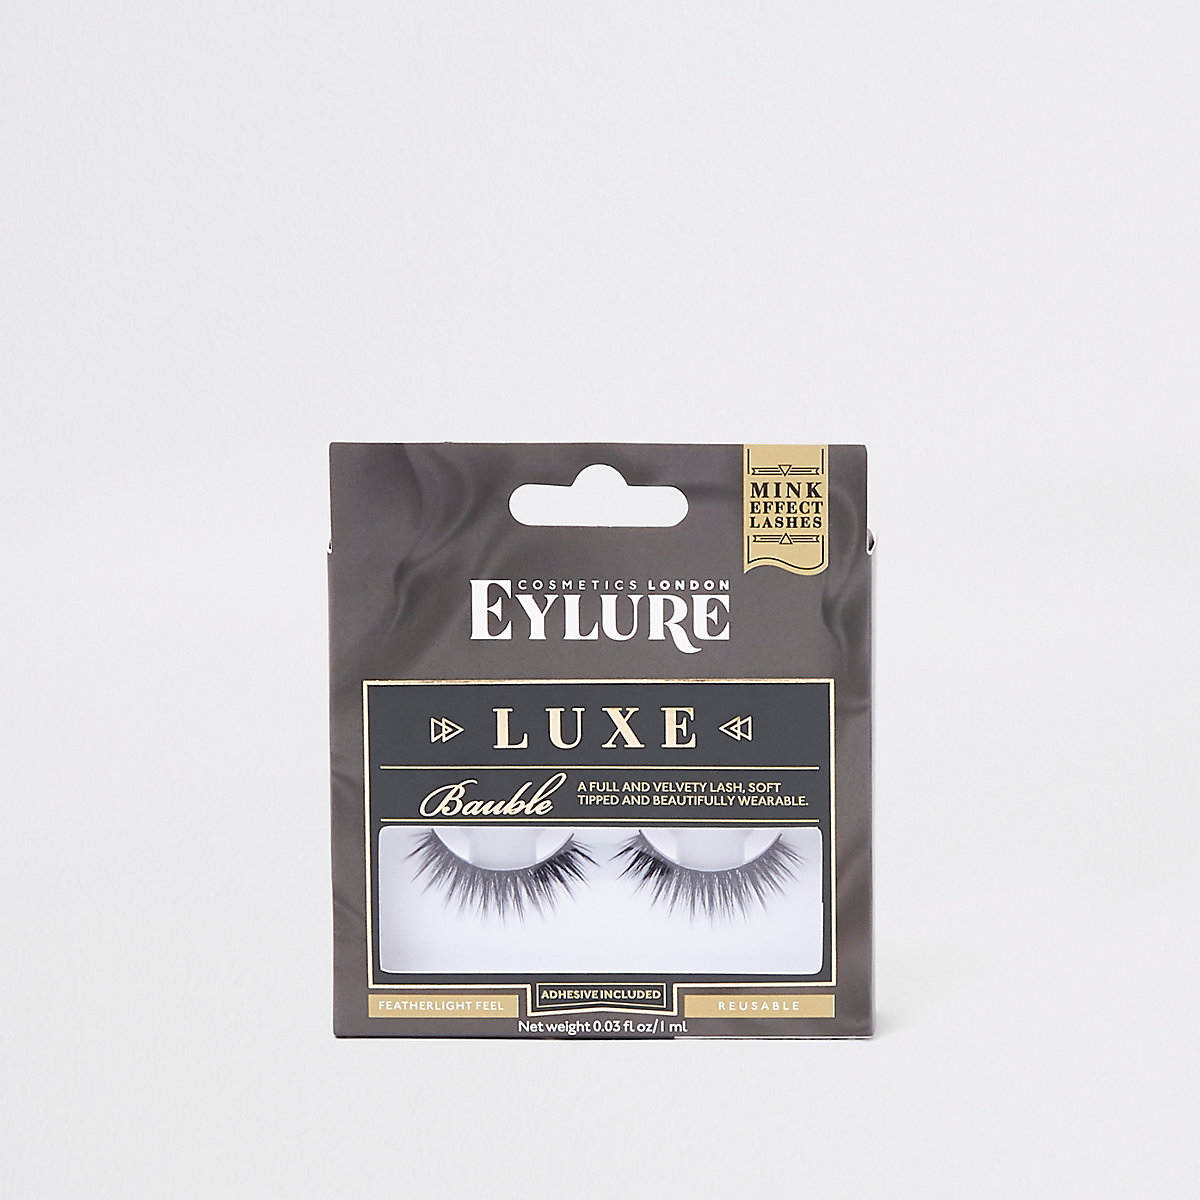 Eylure Luxe Collection Bauble false eyelashes